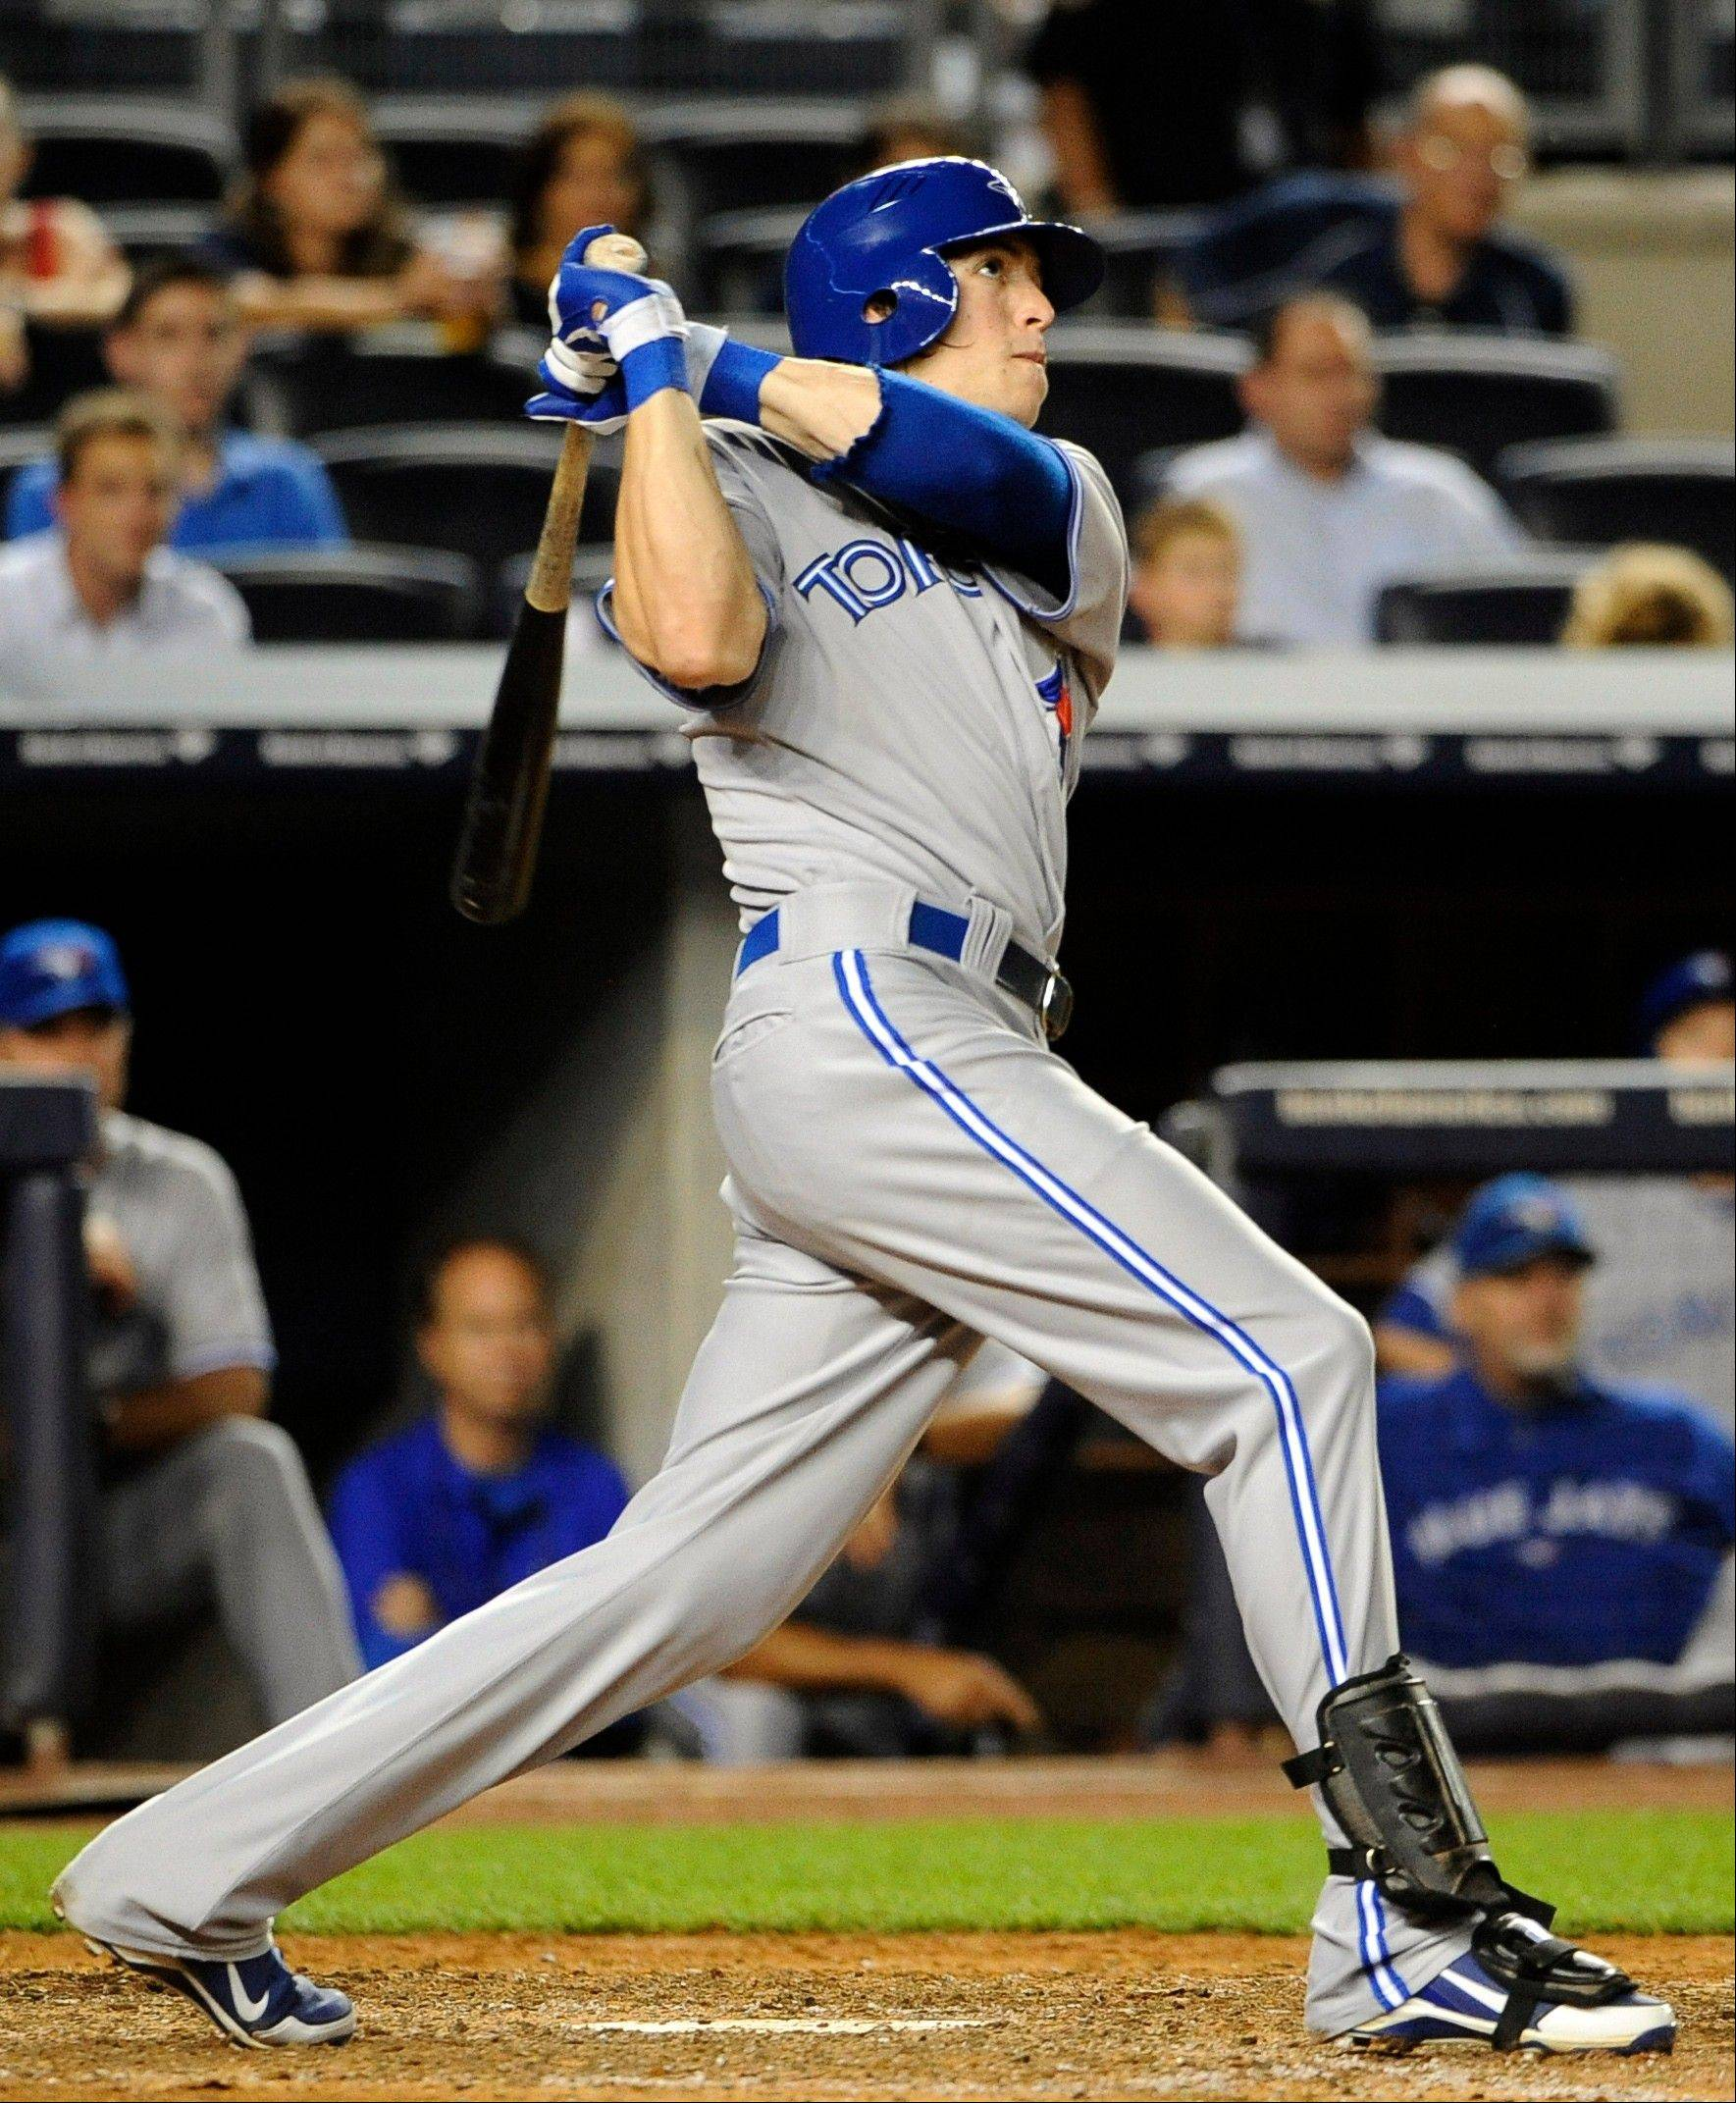 The Blue Jays' Colby Rasmus hits a three-run home run in the ninth inning Monday night in New York.